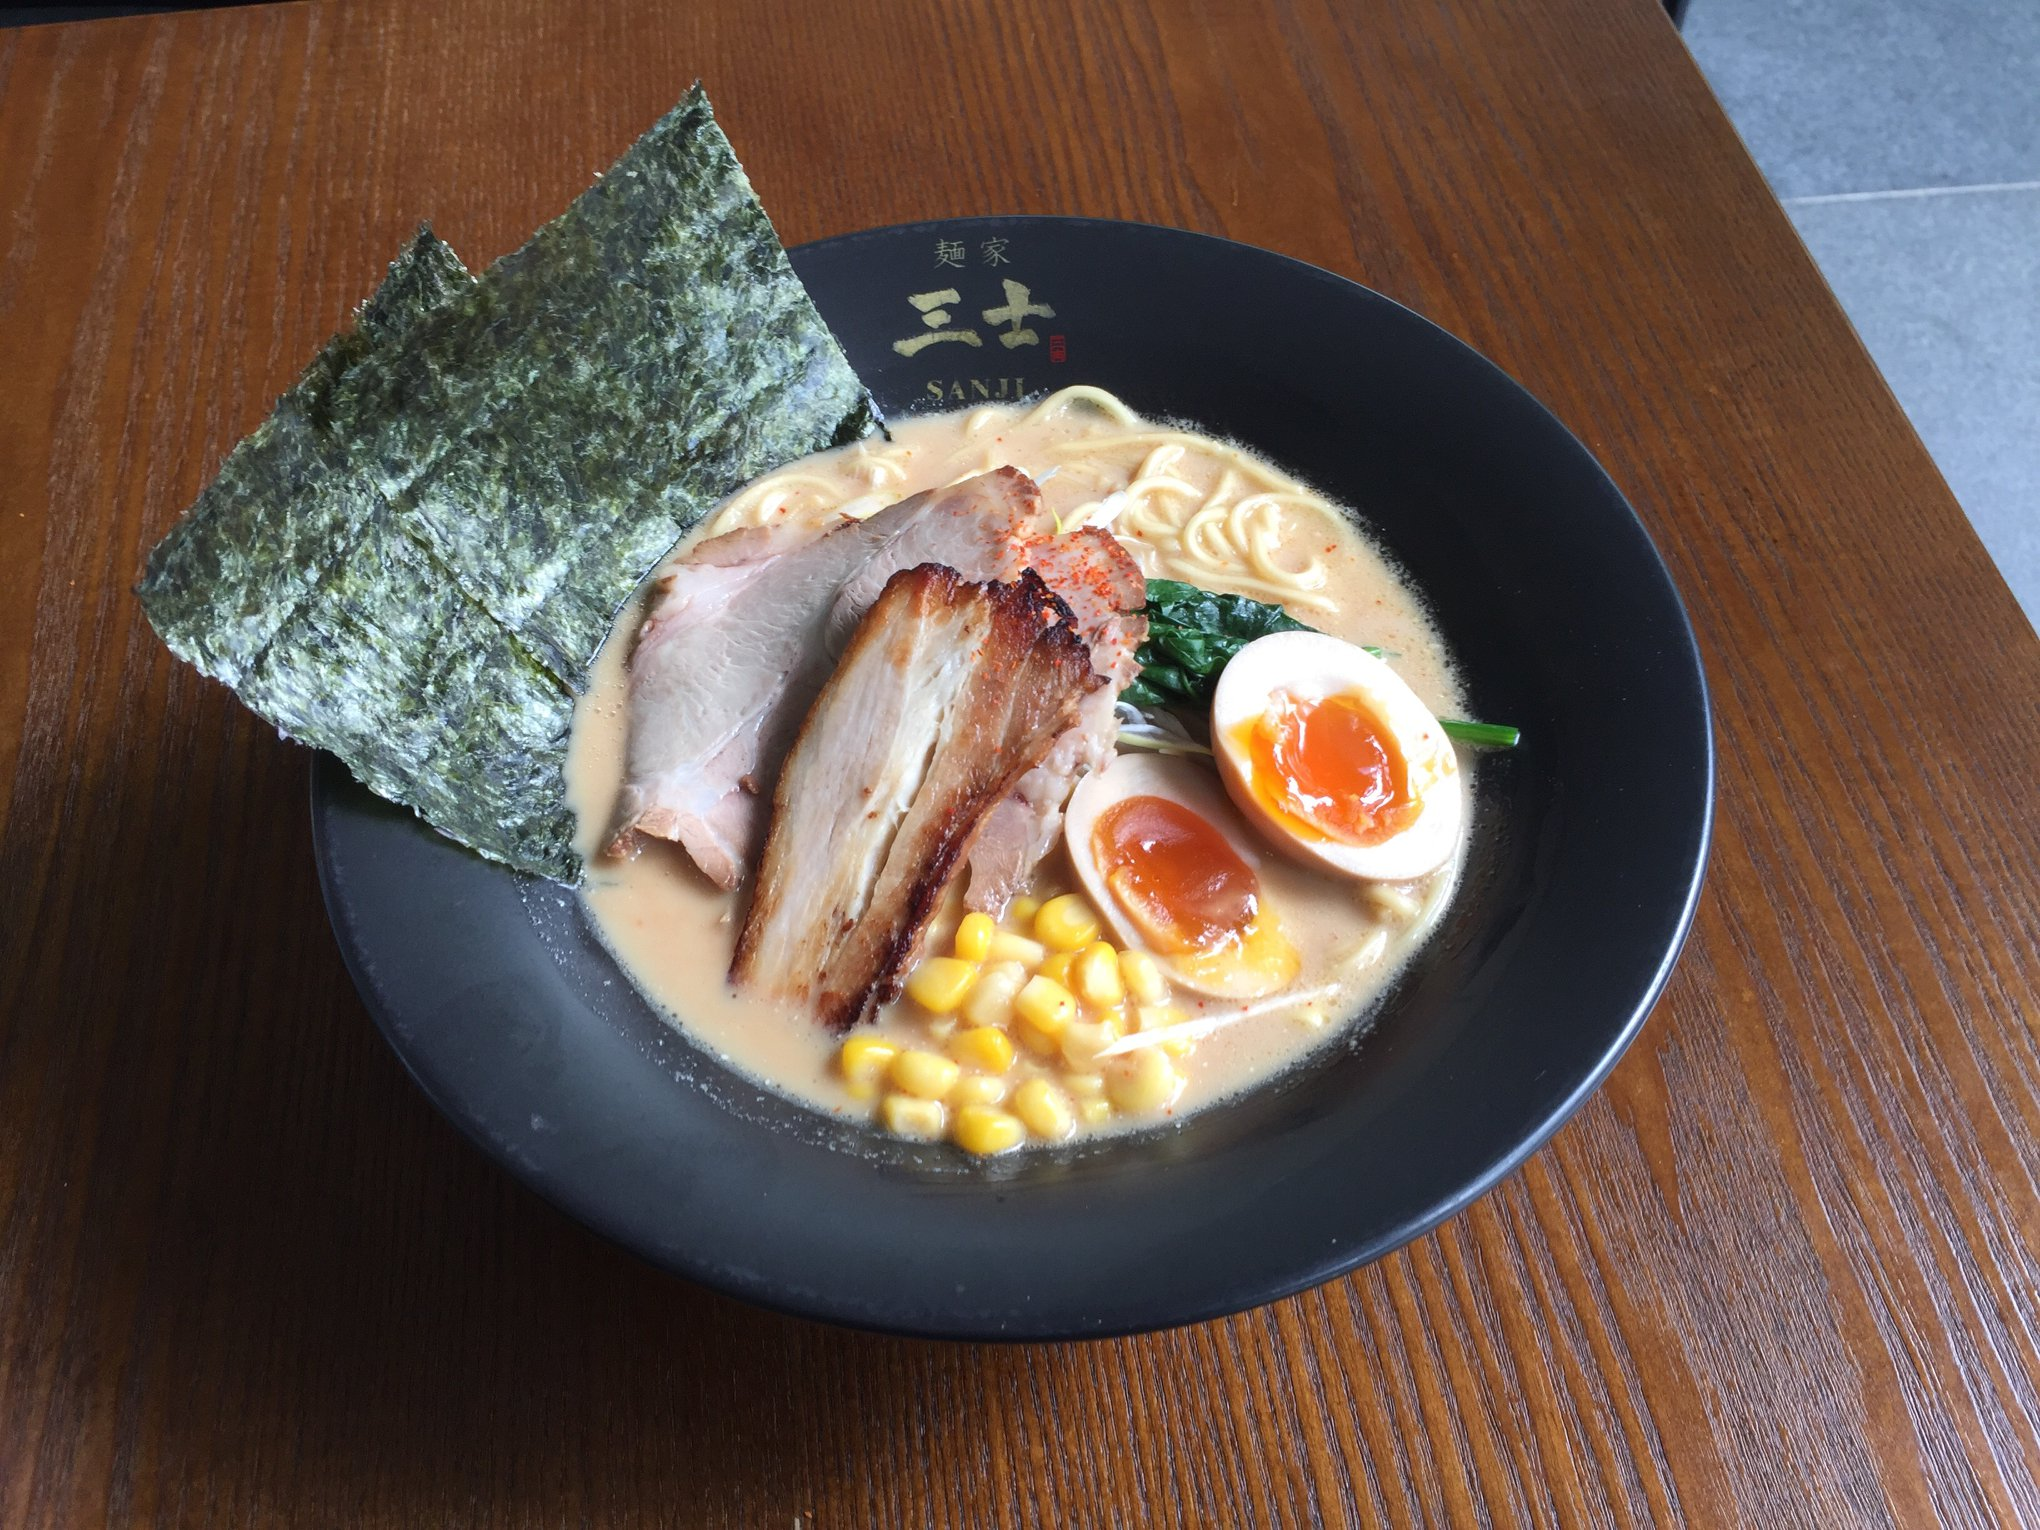 menya sanji ramen place in singapore